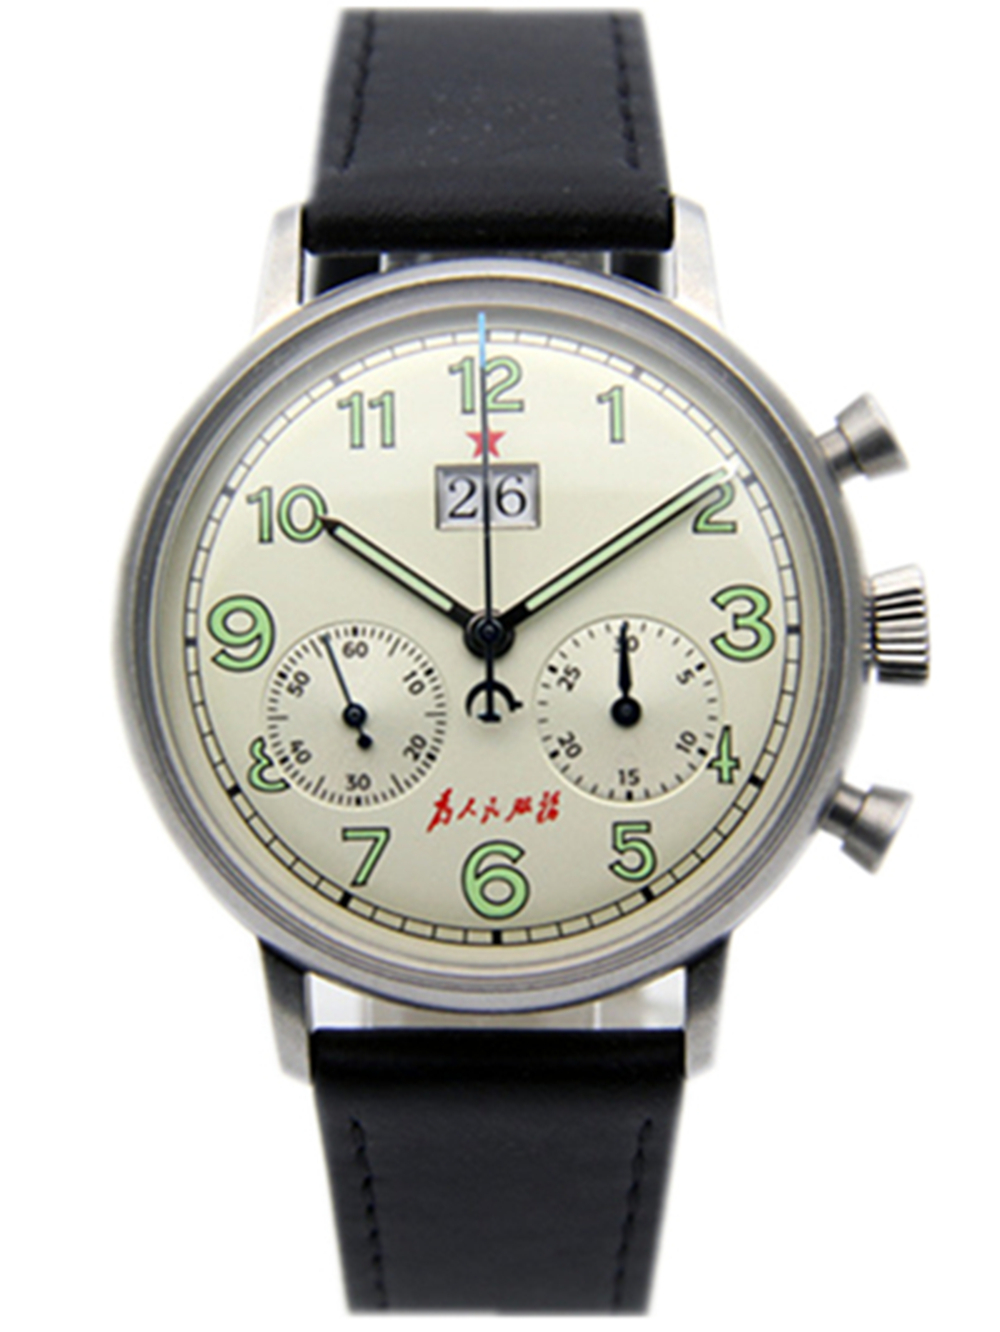 Seagull Movement Mechanical Chronograph Mens Wrist watch Pilot Officiall Reissue 304 St19 1963 Flieger big date CalendarSeagull Movement Mechanical Chronograph Mens Wrist watch Pilot Officiall Reissue 304 St19 1963 Flieger big date Calendar